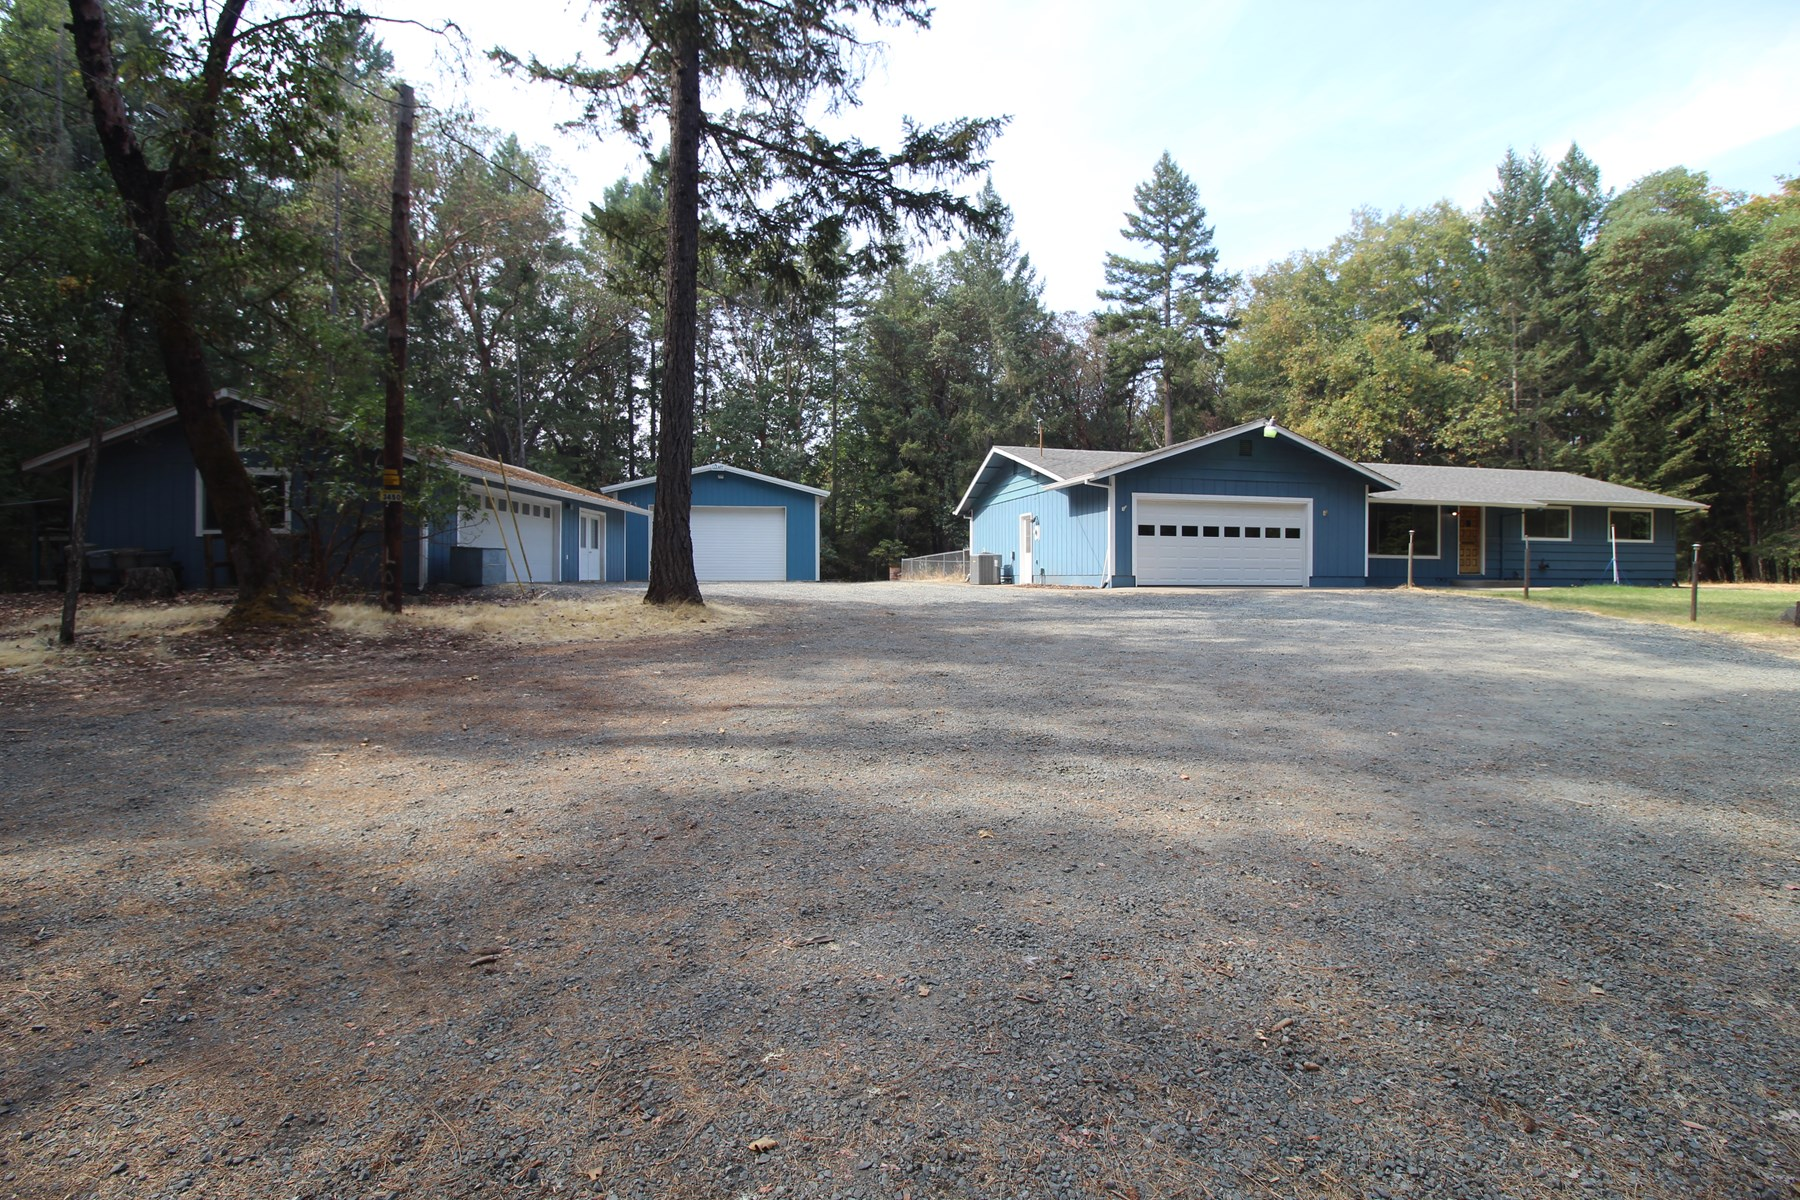 Bautiful 2.5 Acre Property in Southern Oregon